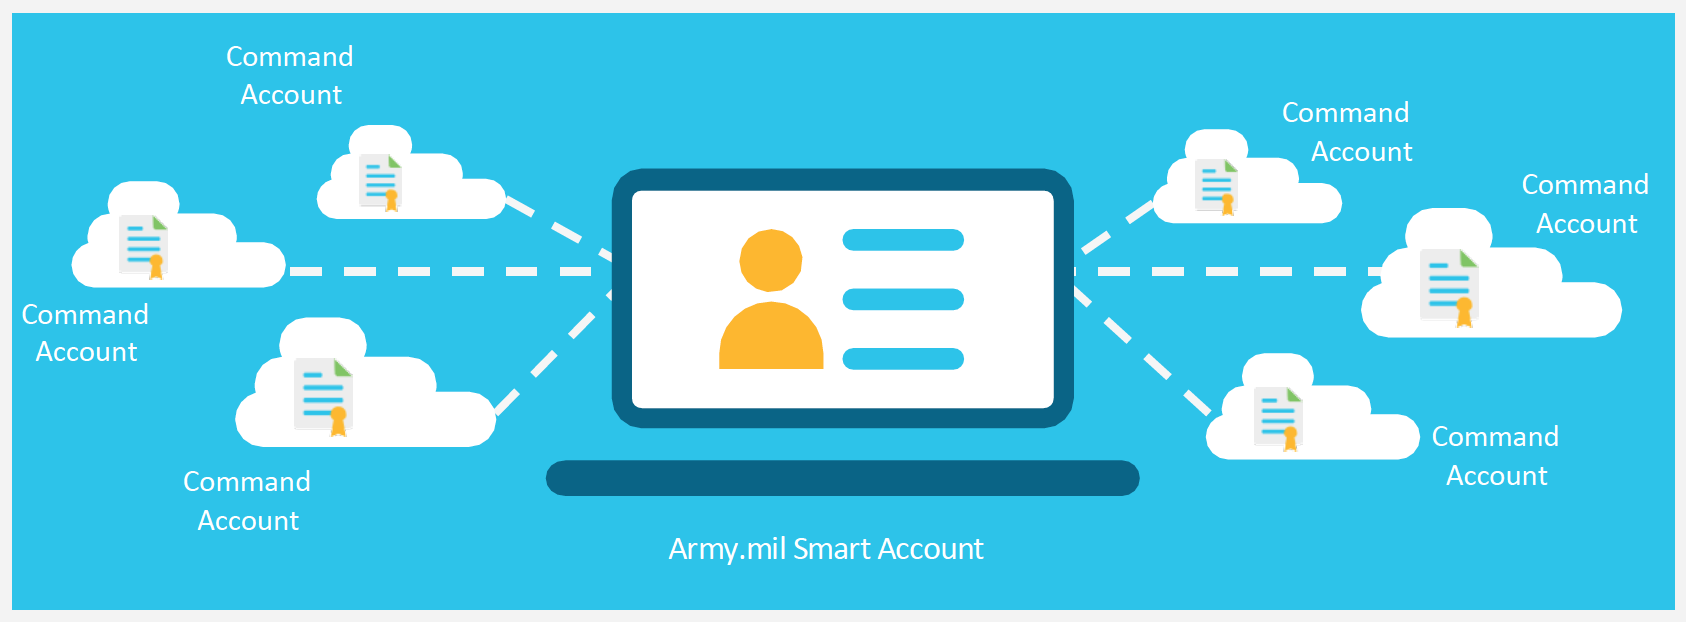 Army.mil Smart Account